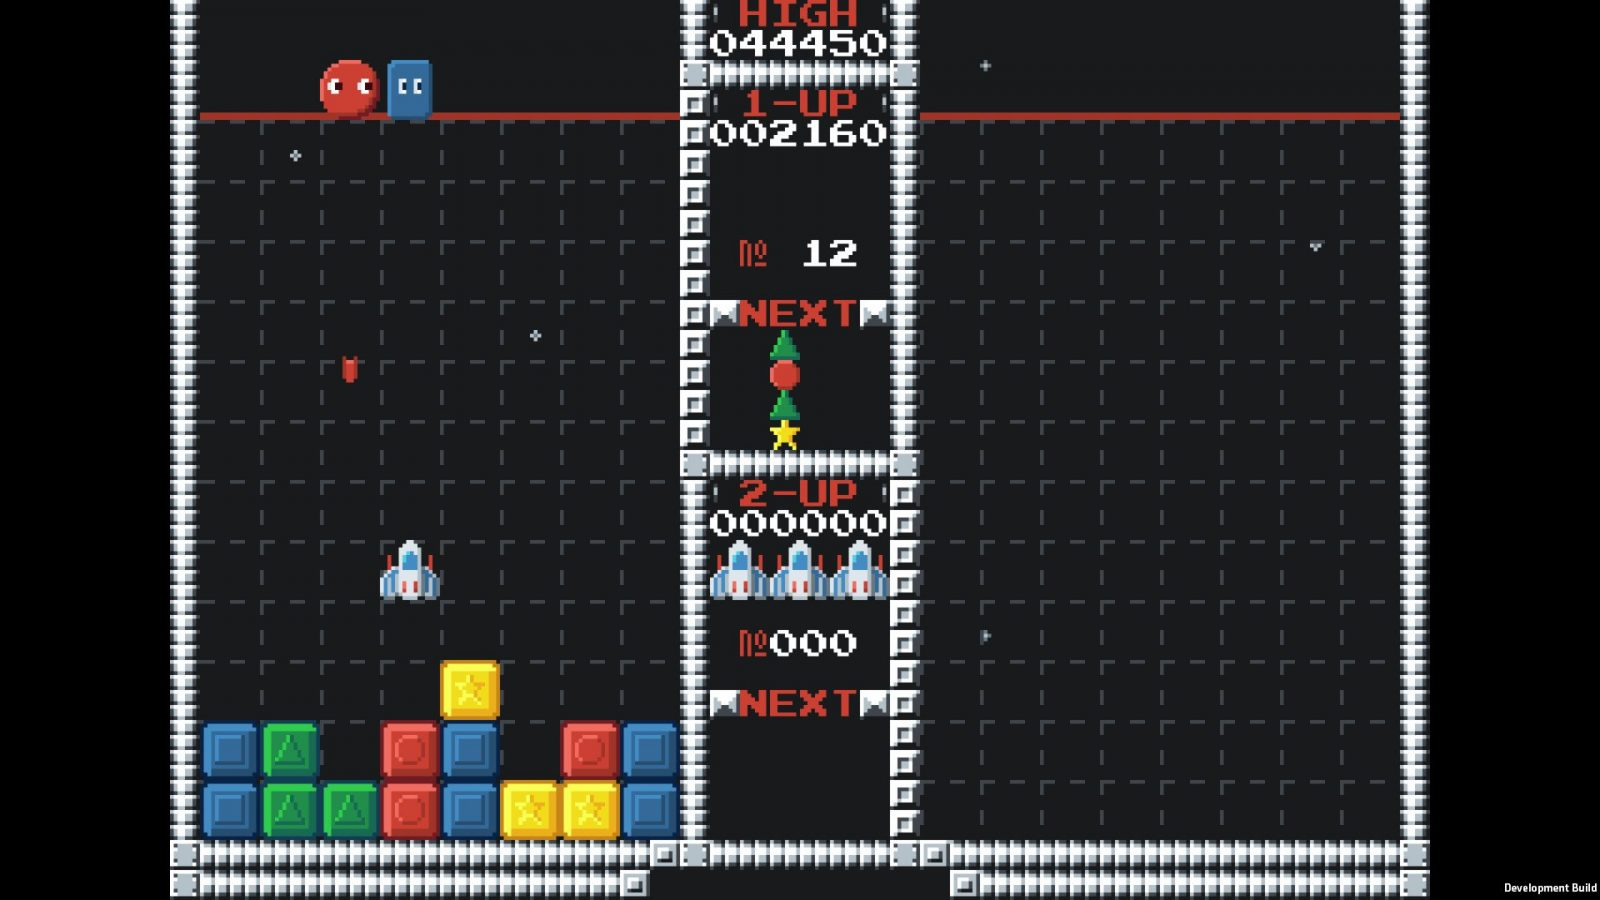 Hands-on with ChromaVaders, A Compelling Mash-Up of Galaga and Columns